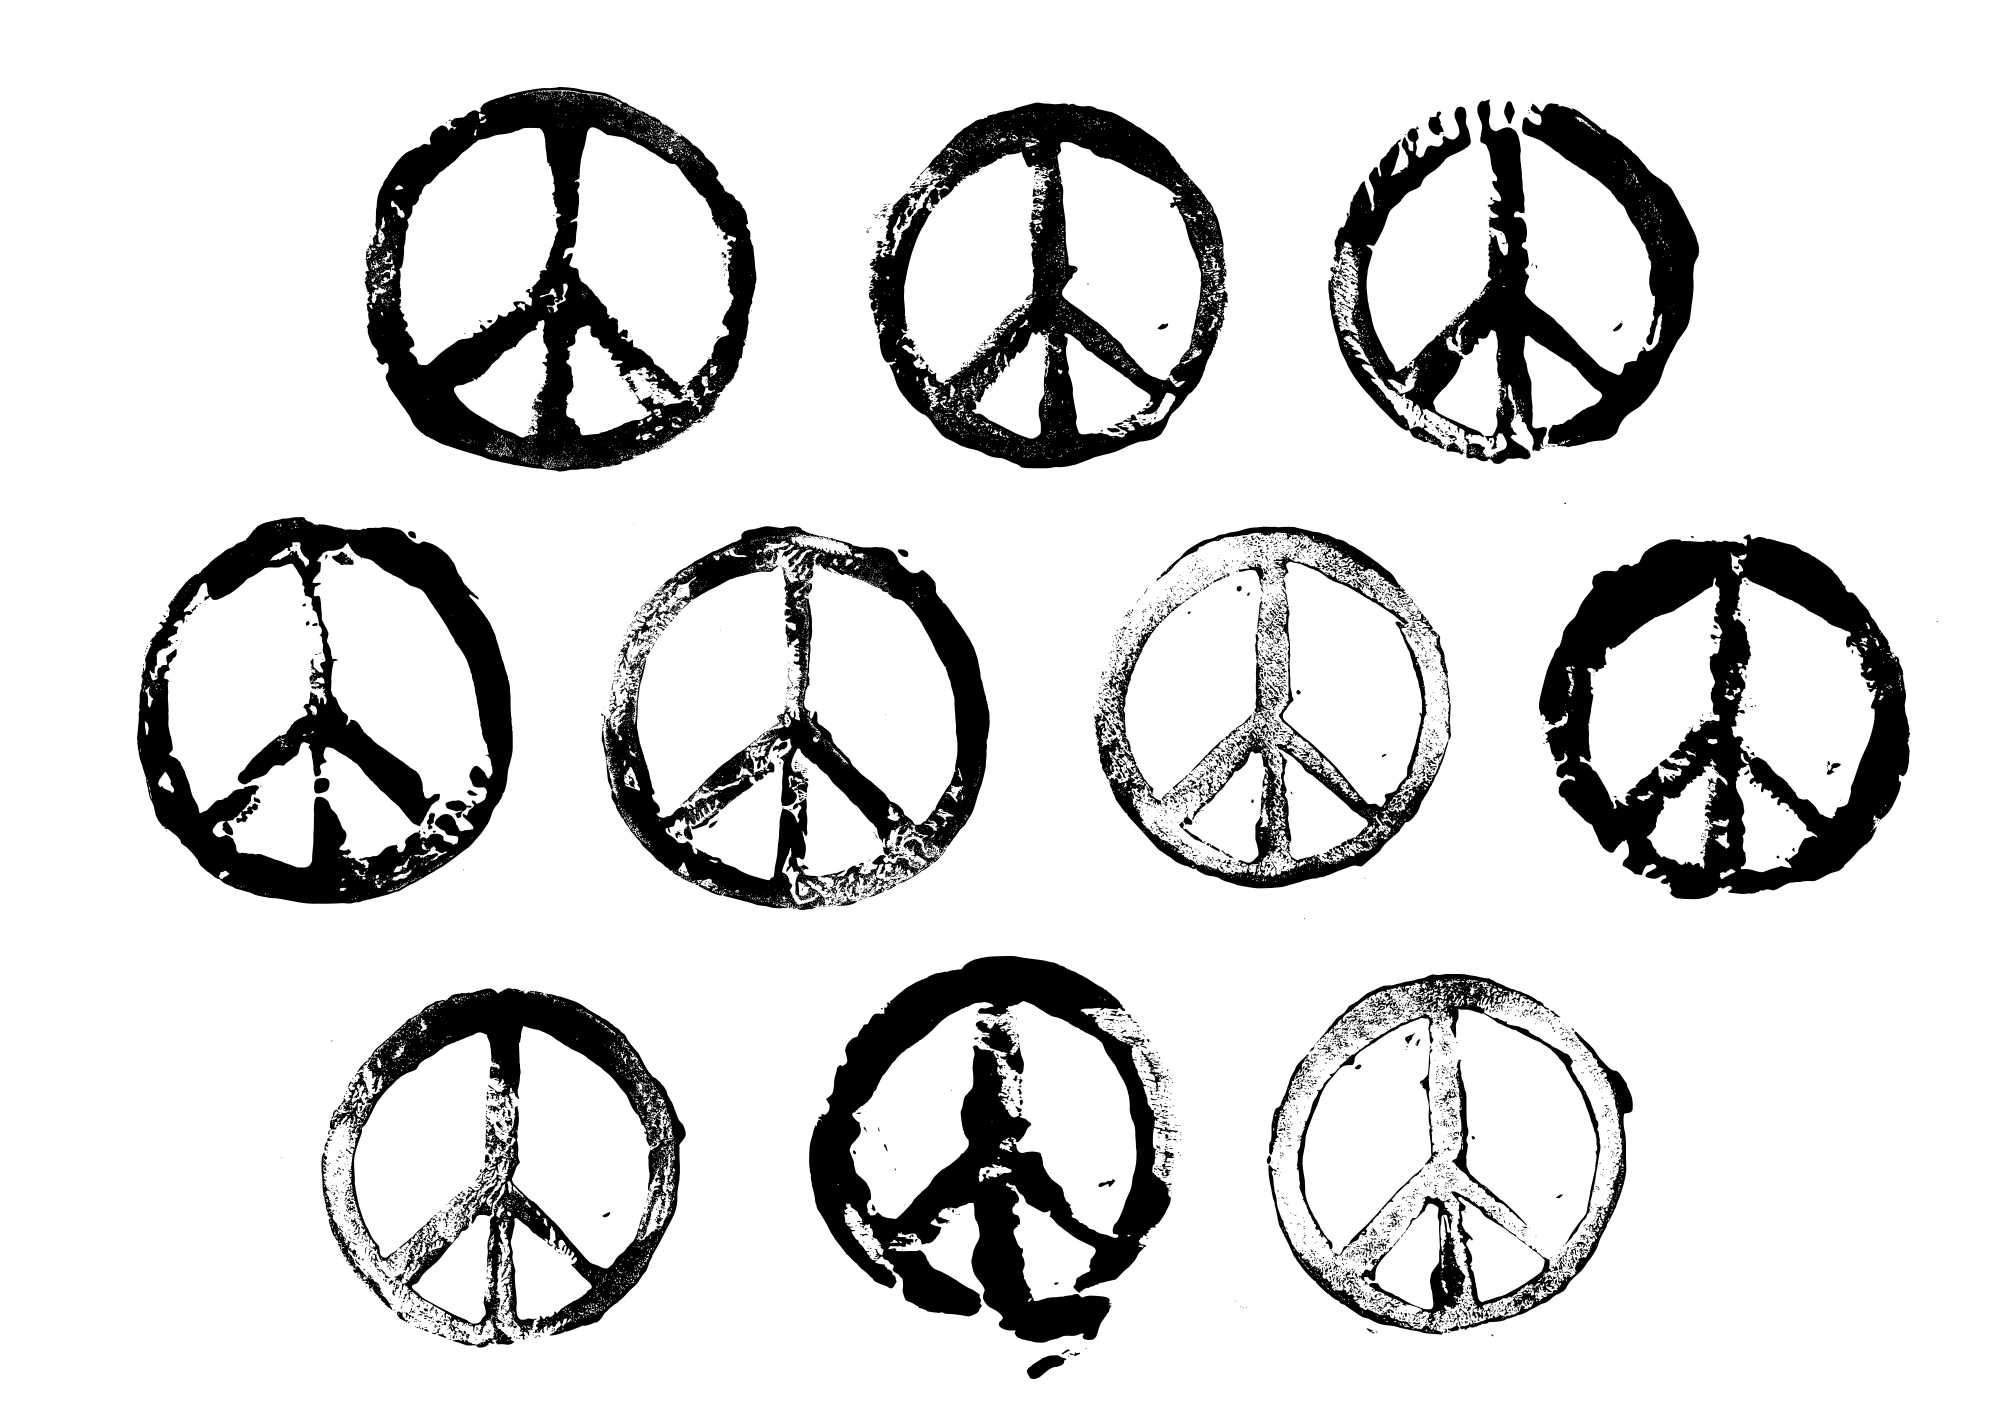 10-grunge-stamp-peace-symbol-cover.jpg